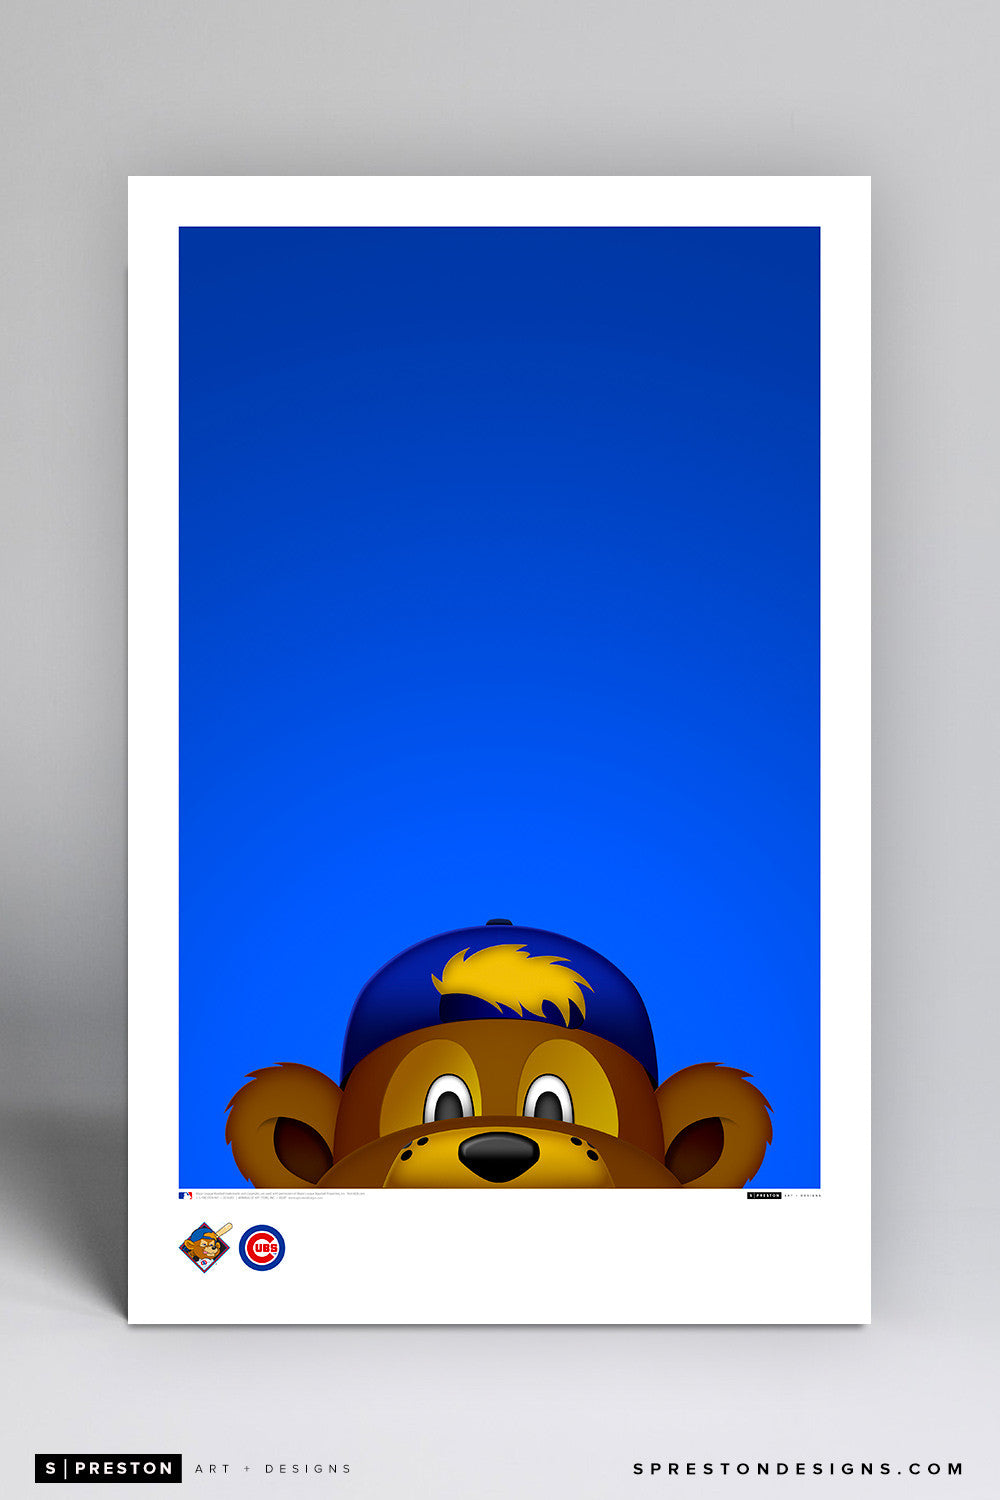 Minimalist Clark The Cub Art Poster Art Poster - Chicago Cubs - S. Preston Art + Designs